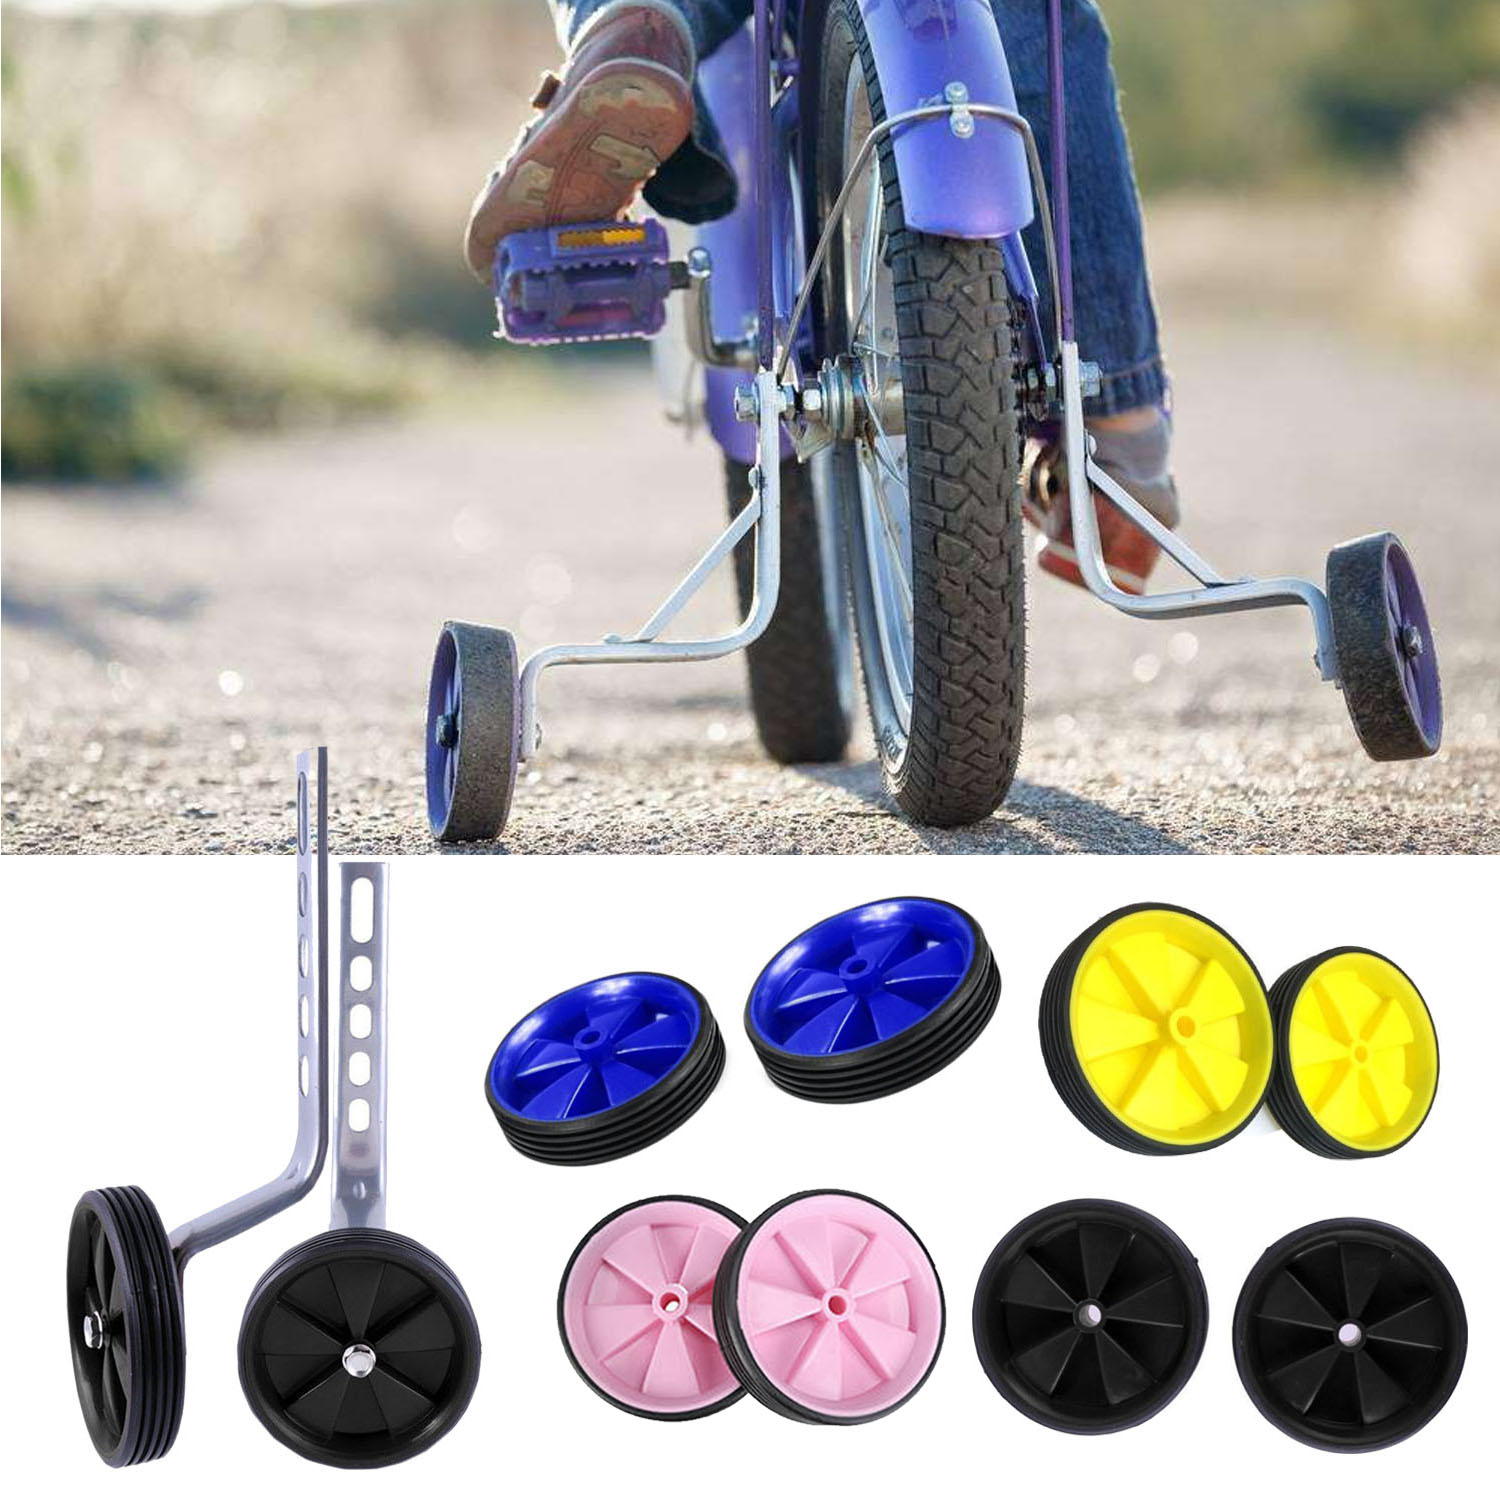 Universal Bike Stabilisers Cycling Fun And Safety Bicycle Training Wheels With Led Colorful Light Up For